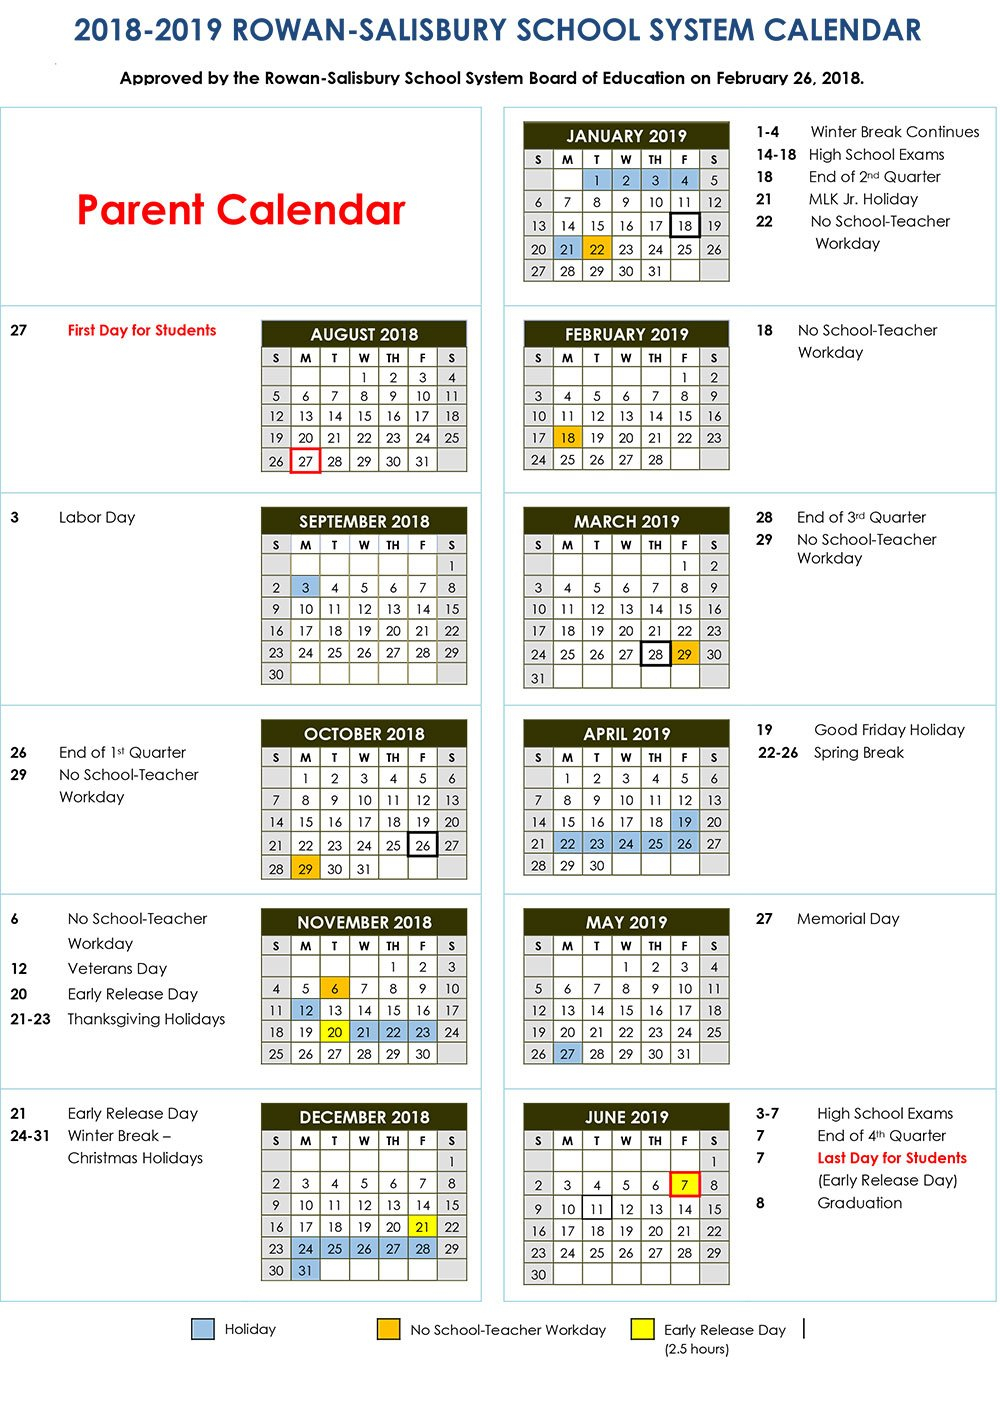 2018-2019 Calendars | Rss Post - Rowan-Salisbury Schools School District 2 Calendar 2019